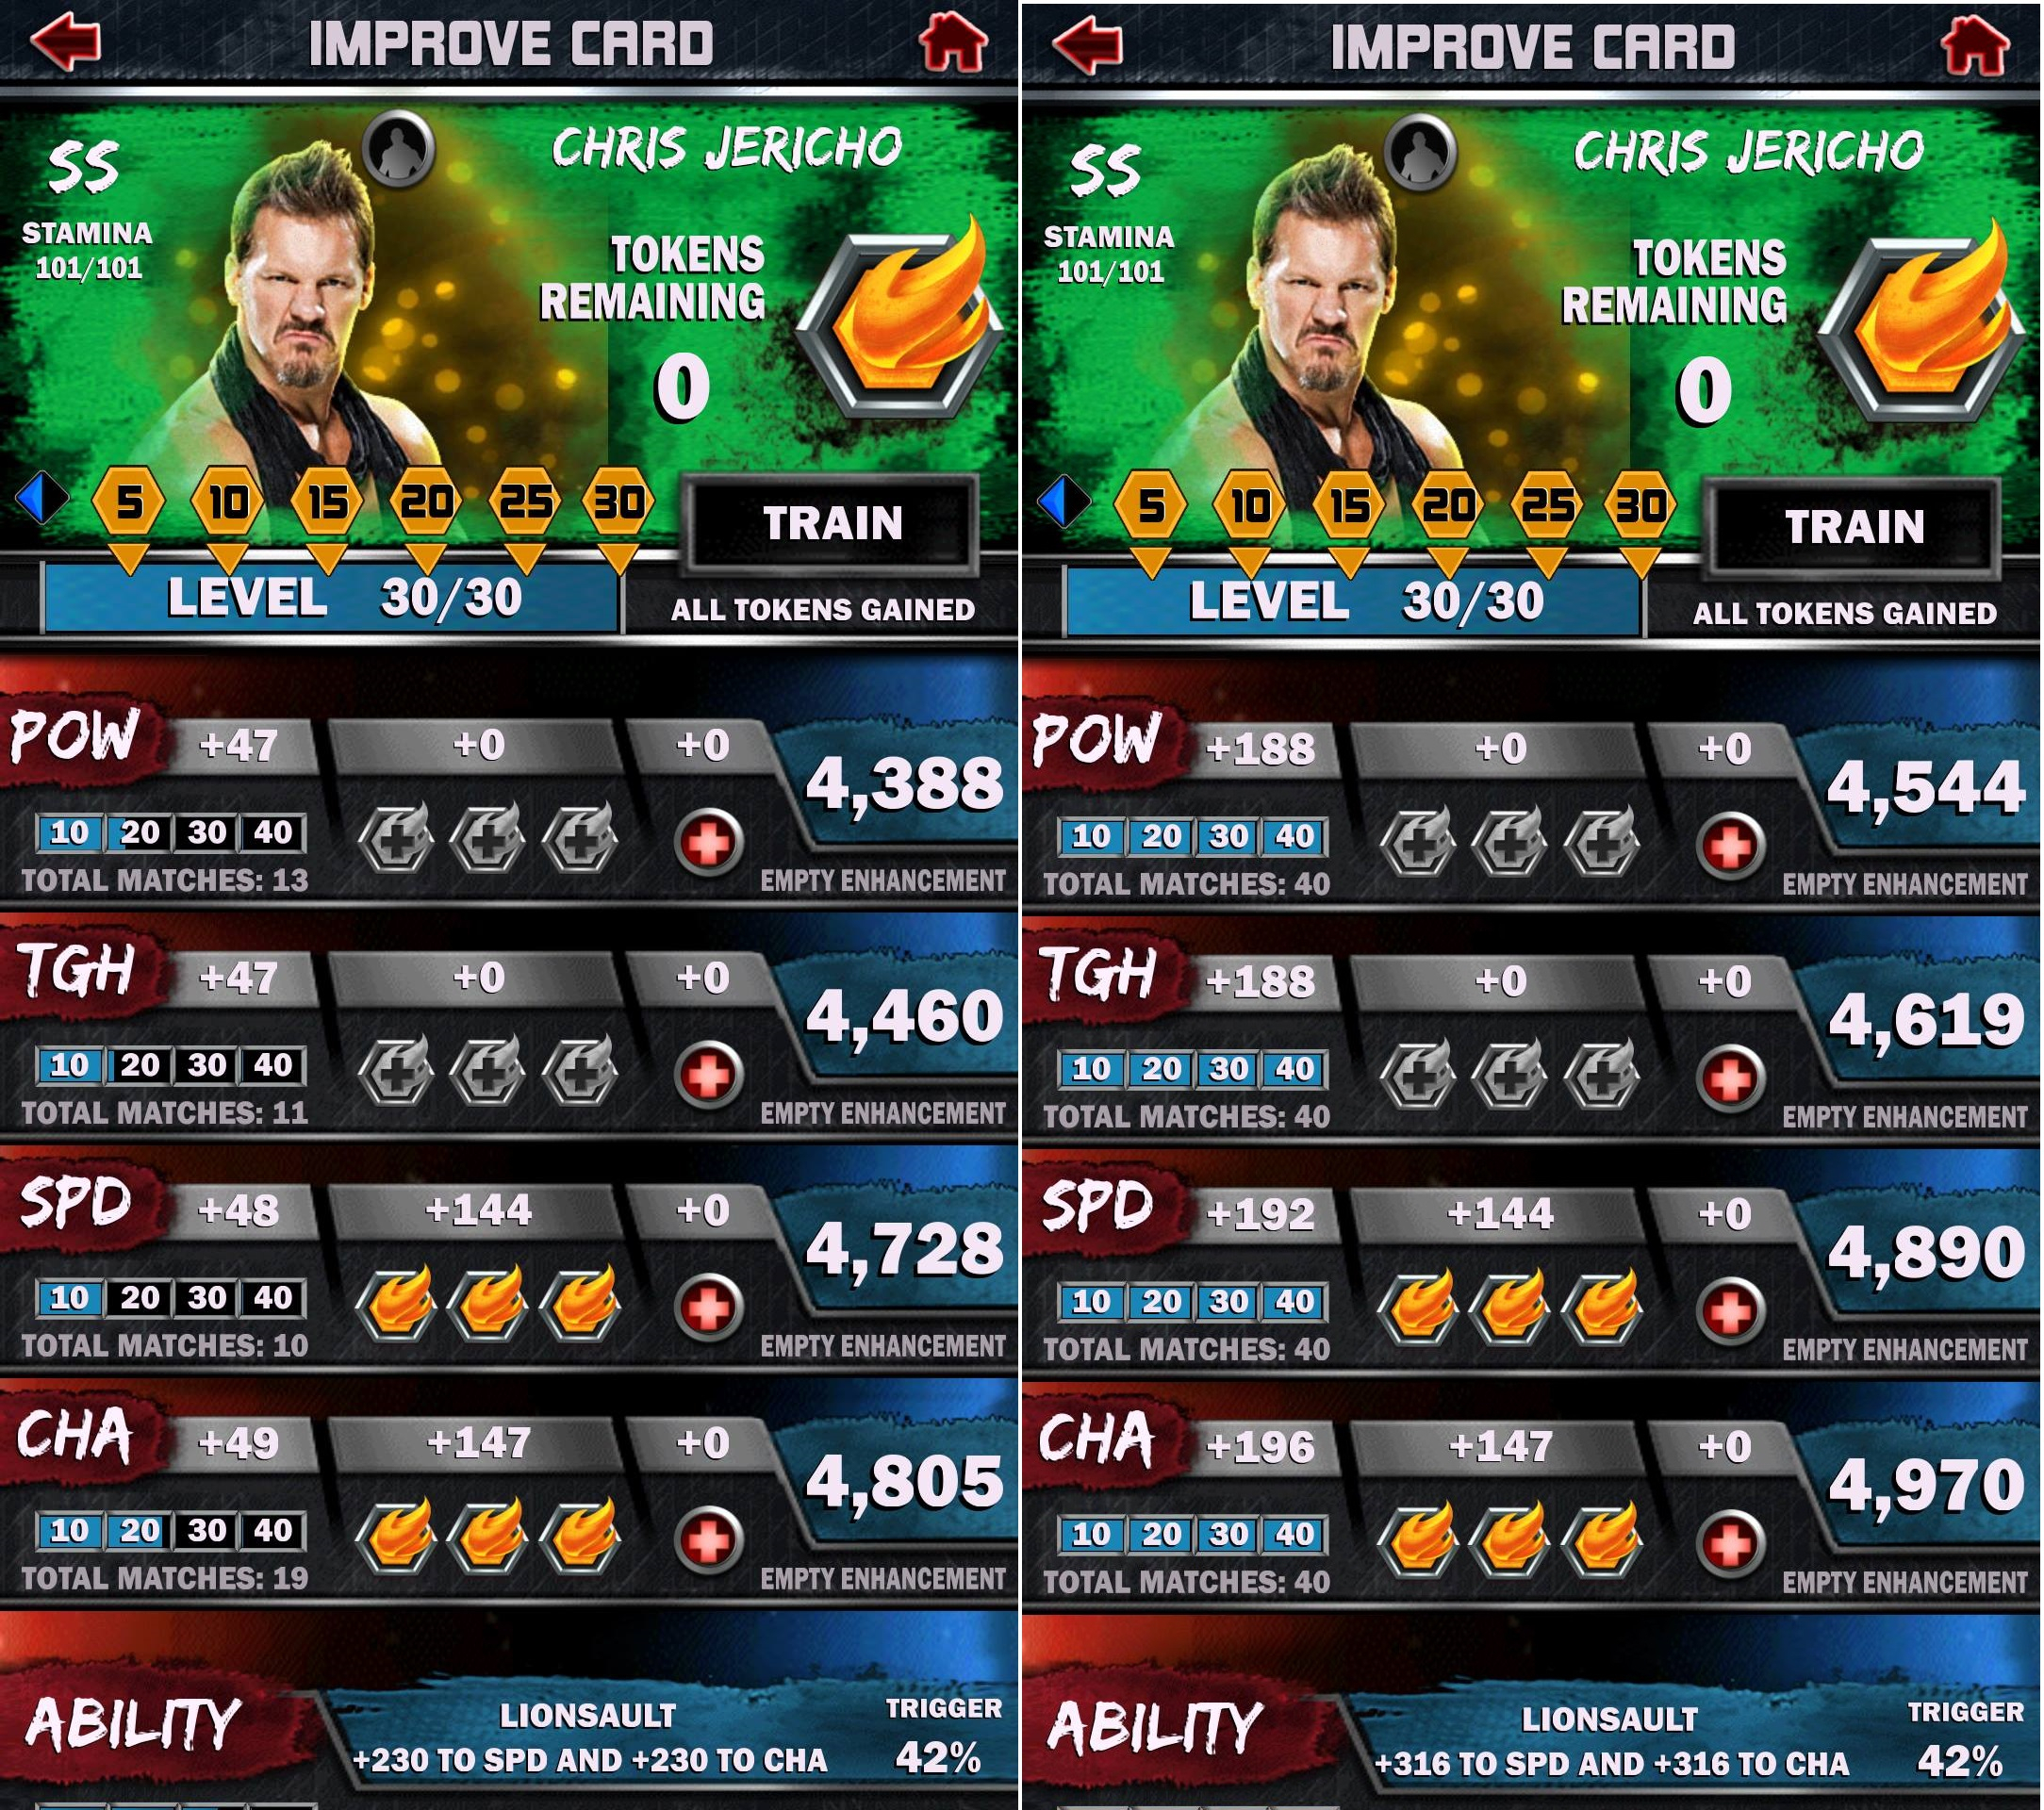 Wwe Supercard Stats Spreadsheet For Noob Question: Same Max Cards But Different Stats? : Wwesupercard